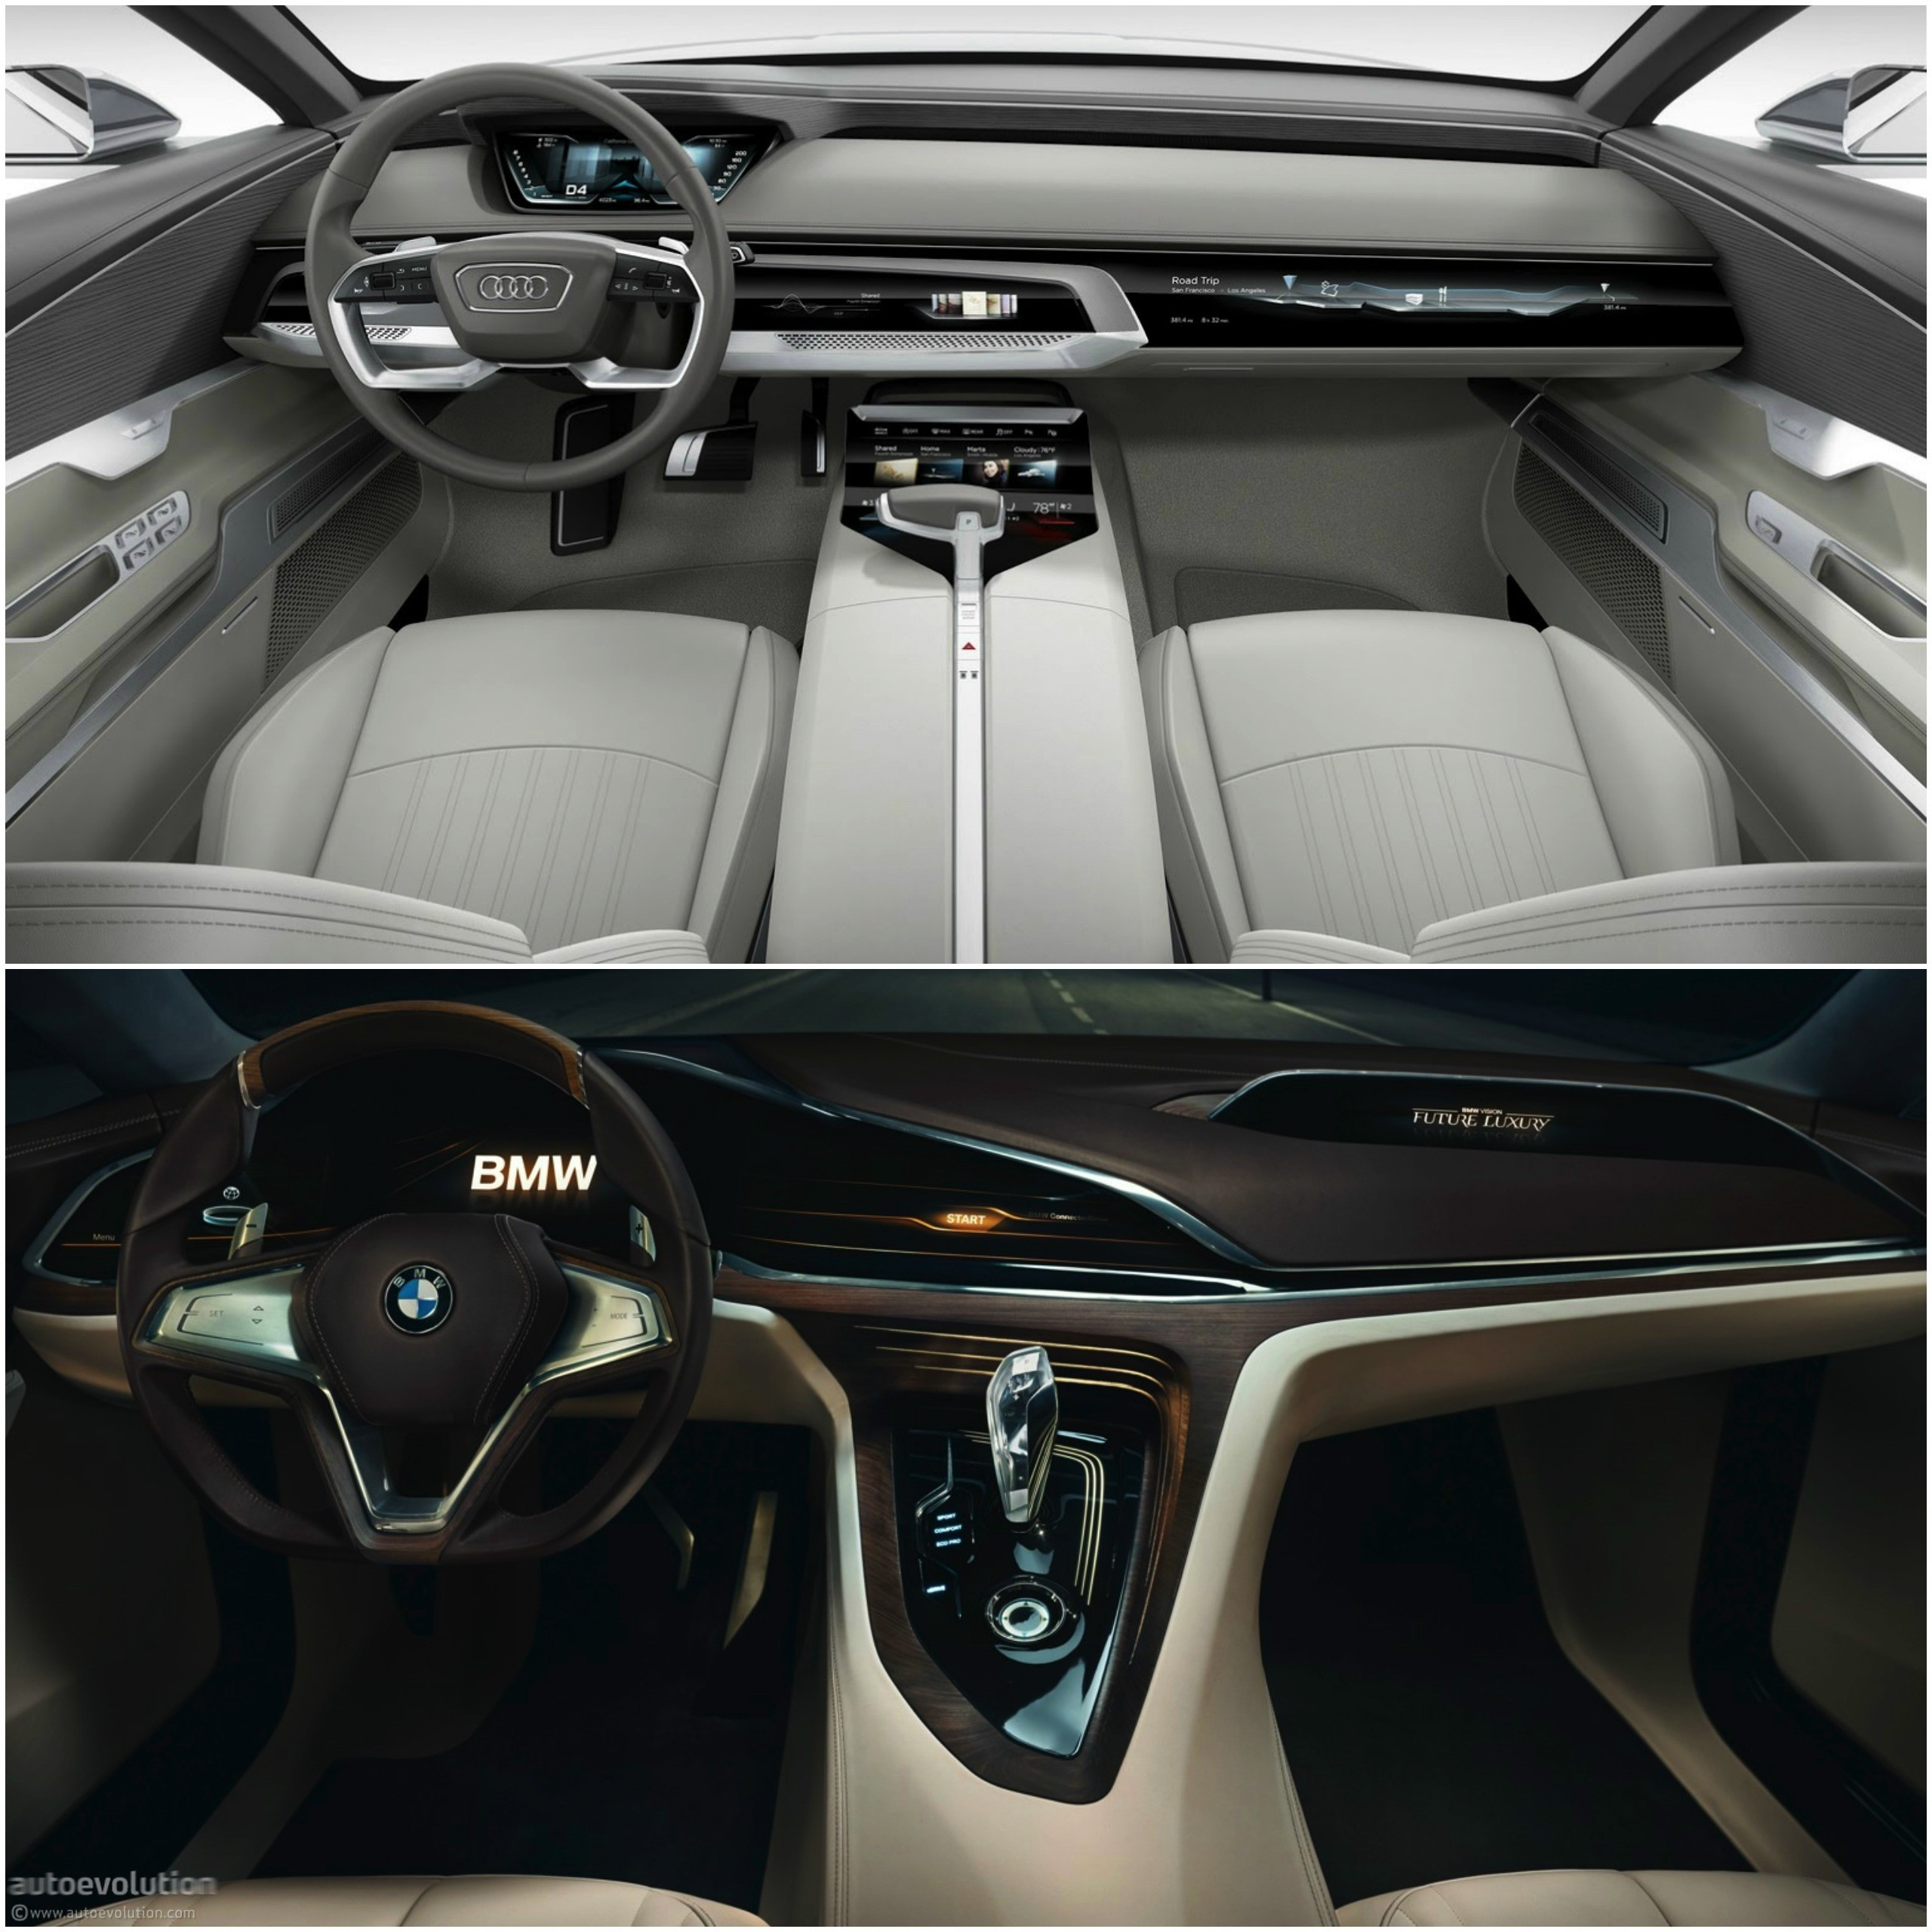 Bmw Concept Car Interior Photo Comparison Bmw Vision Future Luxury Concept Versus